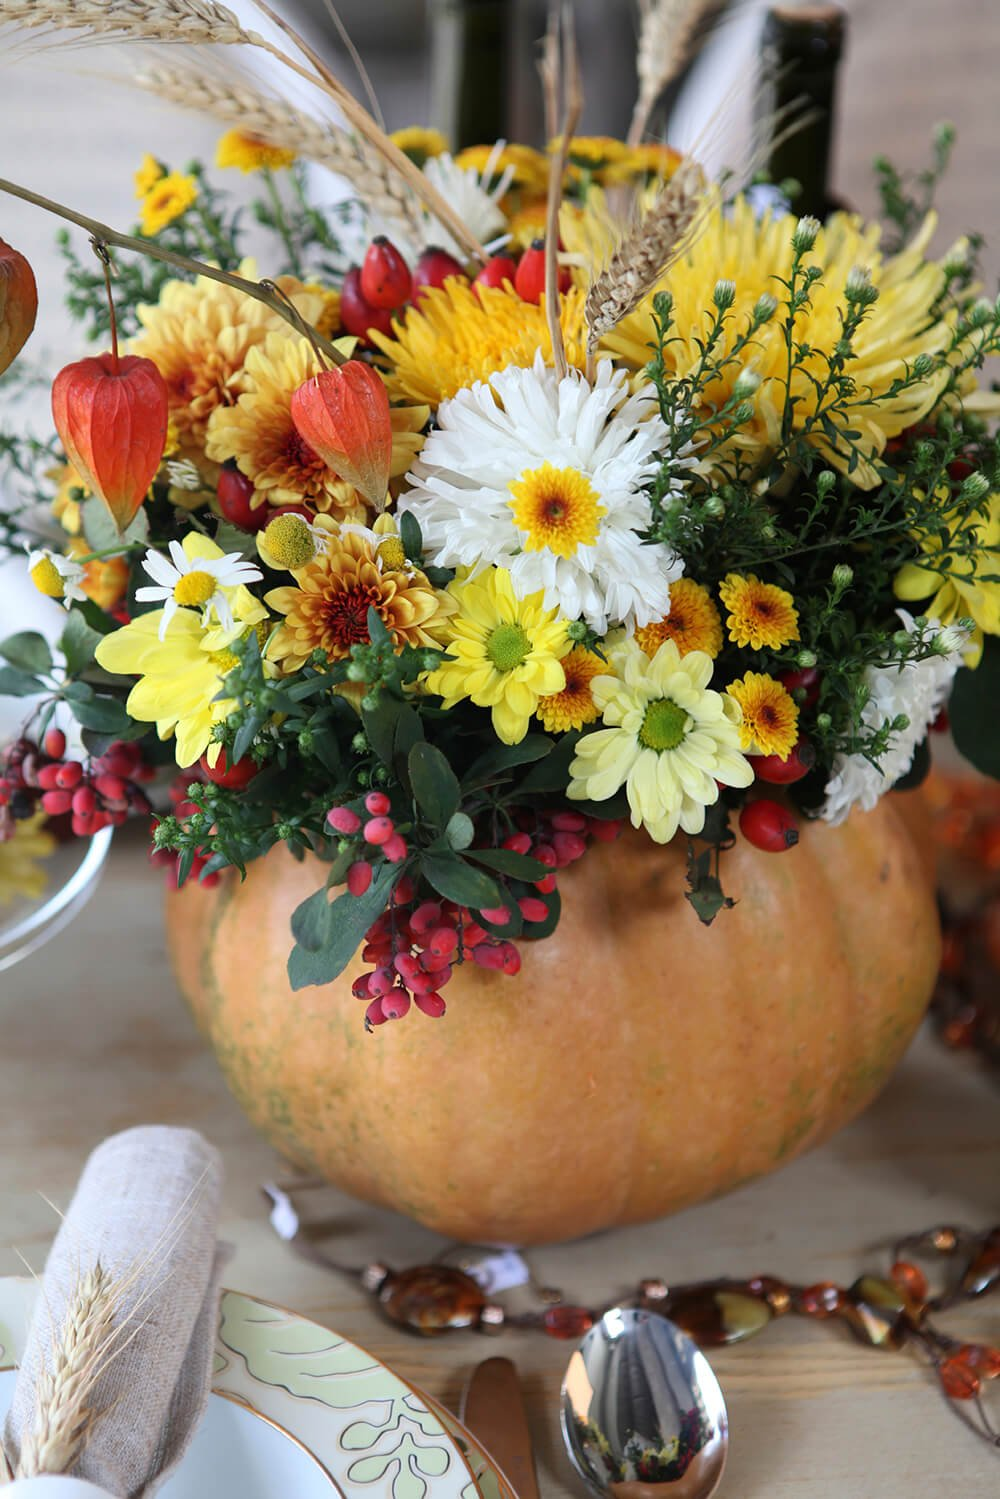 An autumn centerpiece full of daisies and holly berries, all resting neatly in a hollowed out gourd vase. The bouquet also includes sheaves of wheat, which match the accent on the napkin ring.